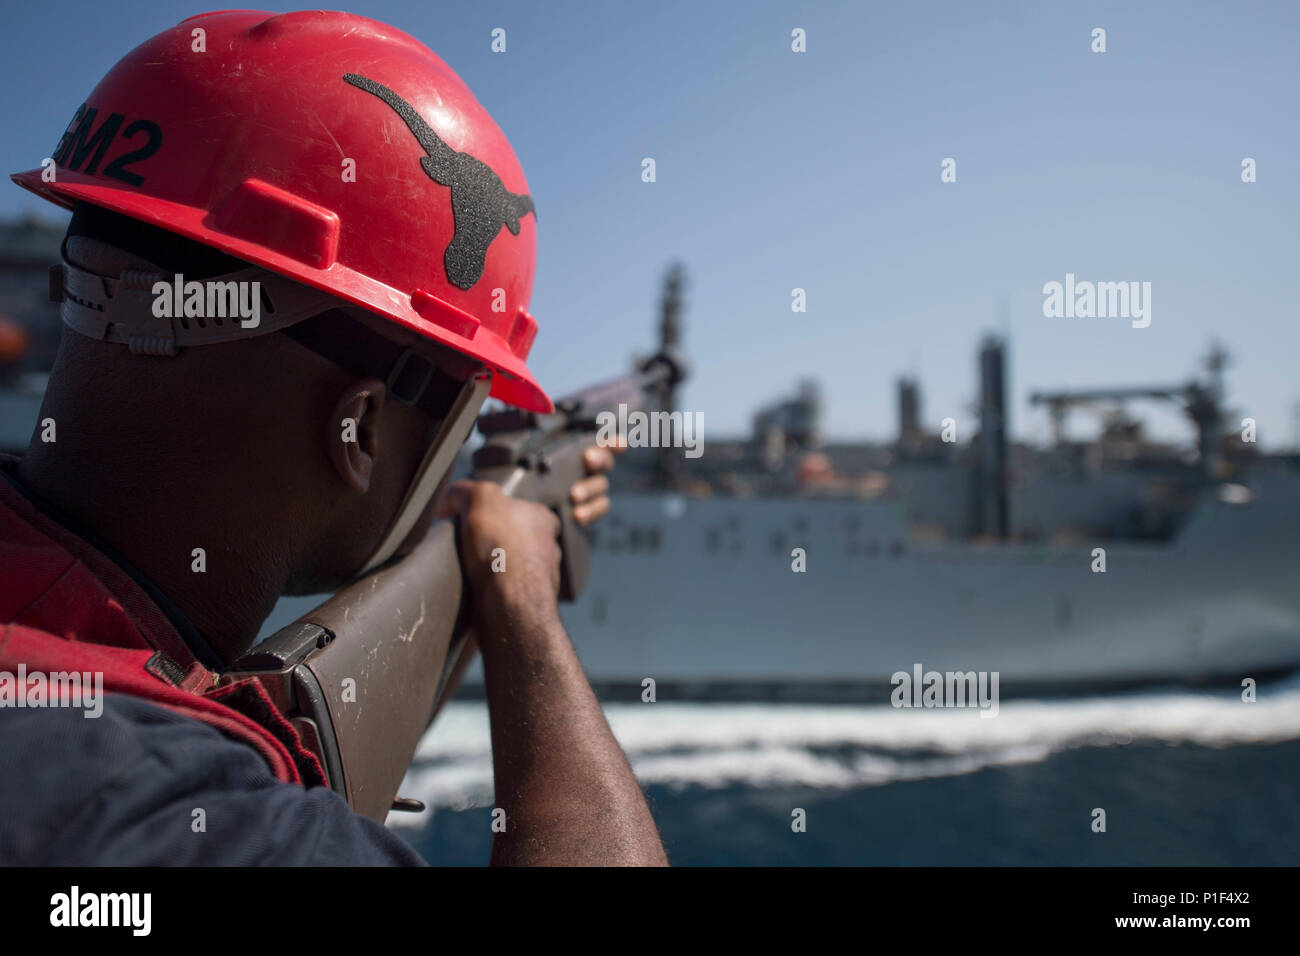 161016-N-DQ503-007    ARABIAN SEA (Oct. 16, 2016) Petty Officer 2nd Class Allen Marshall, prepares to fire a shotline to the fleet replenishment oiler USNS Cesar Chavez (T-AKE 14) from the guided-missile destroyer USS Roosevelt (DDG 80) during a replenishment-at-sea. Roosevelt, deployed as part of the Eisenhower Carrier Strike Group, is supporting maritime security operations and theater security cooperation efforts in the U.S. 5th Fleet area of operations. (U.S. Navy photo by Petty Officer 3rd Class Taylor A. Elberg) - Stock Image